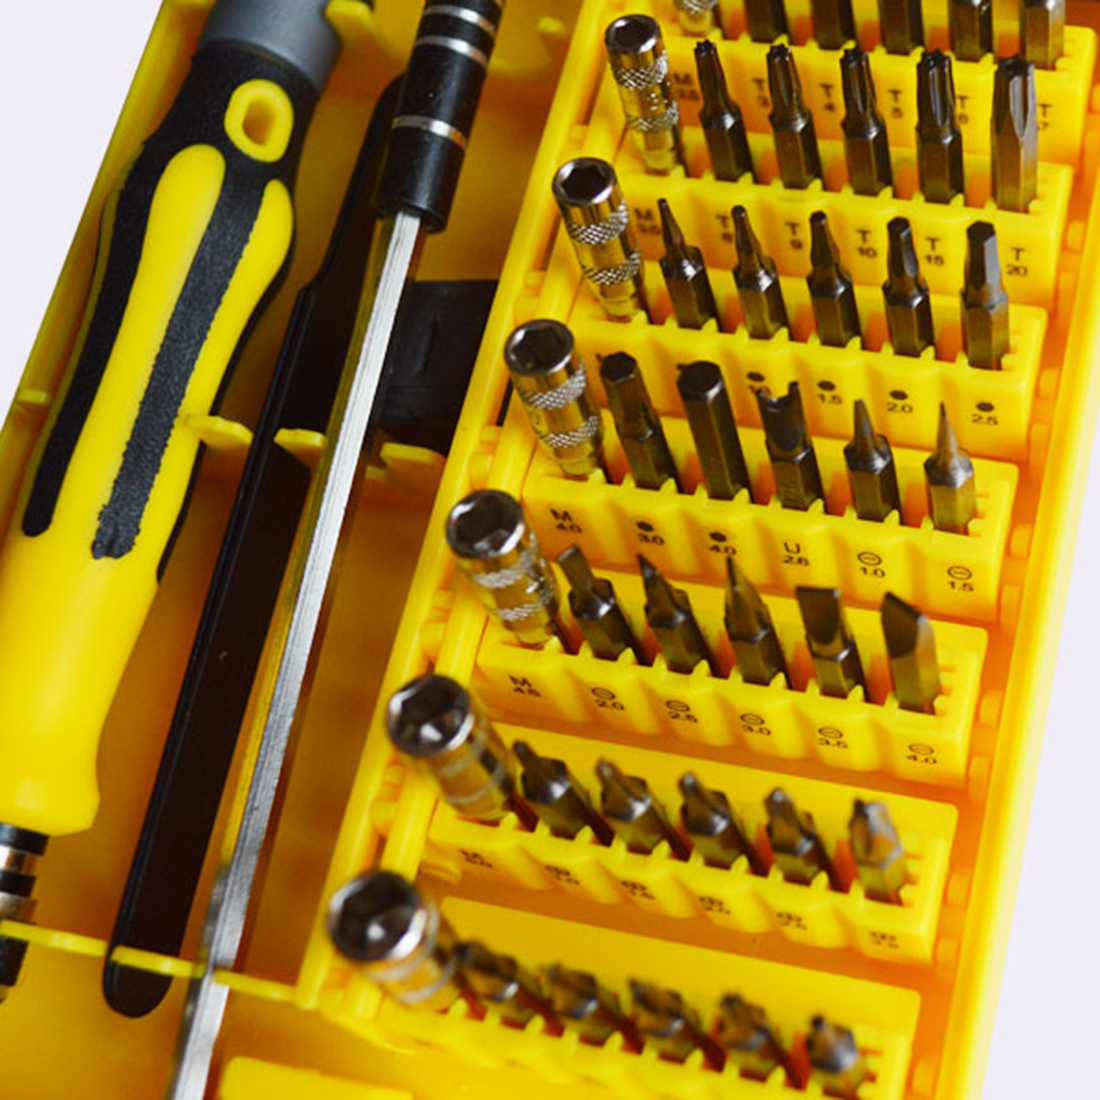 45 In 1 Professional Torx Screwdriver Set Precision For Watch Computer For IPhone Samsung Smart Phone Repair Dismantle Tools